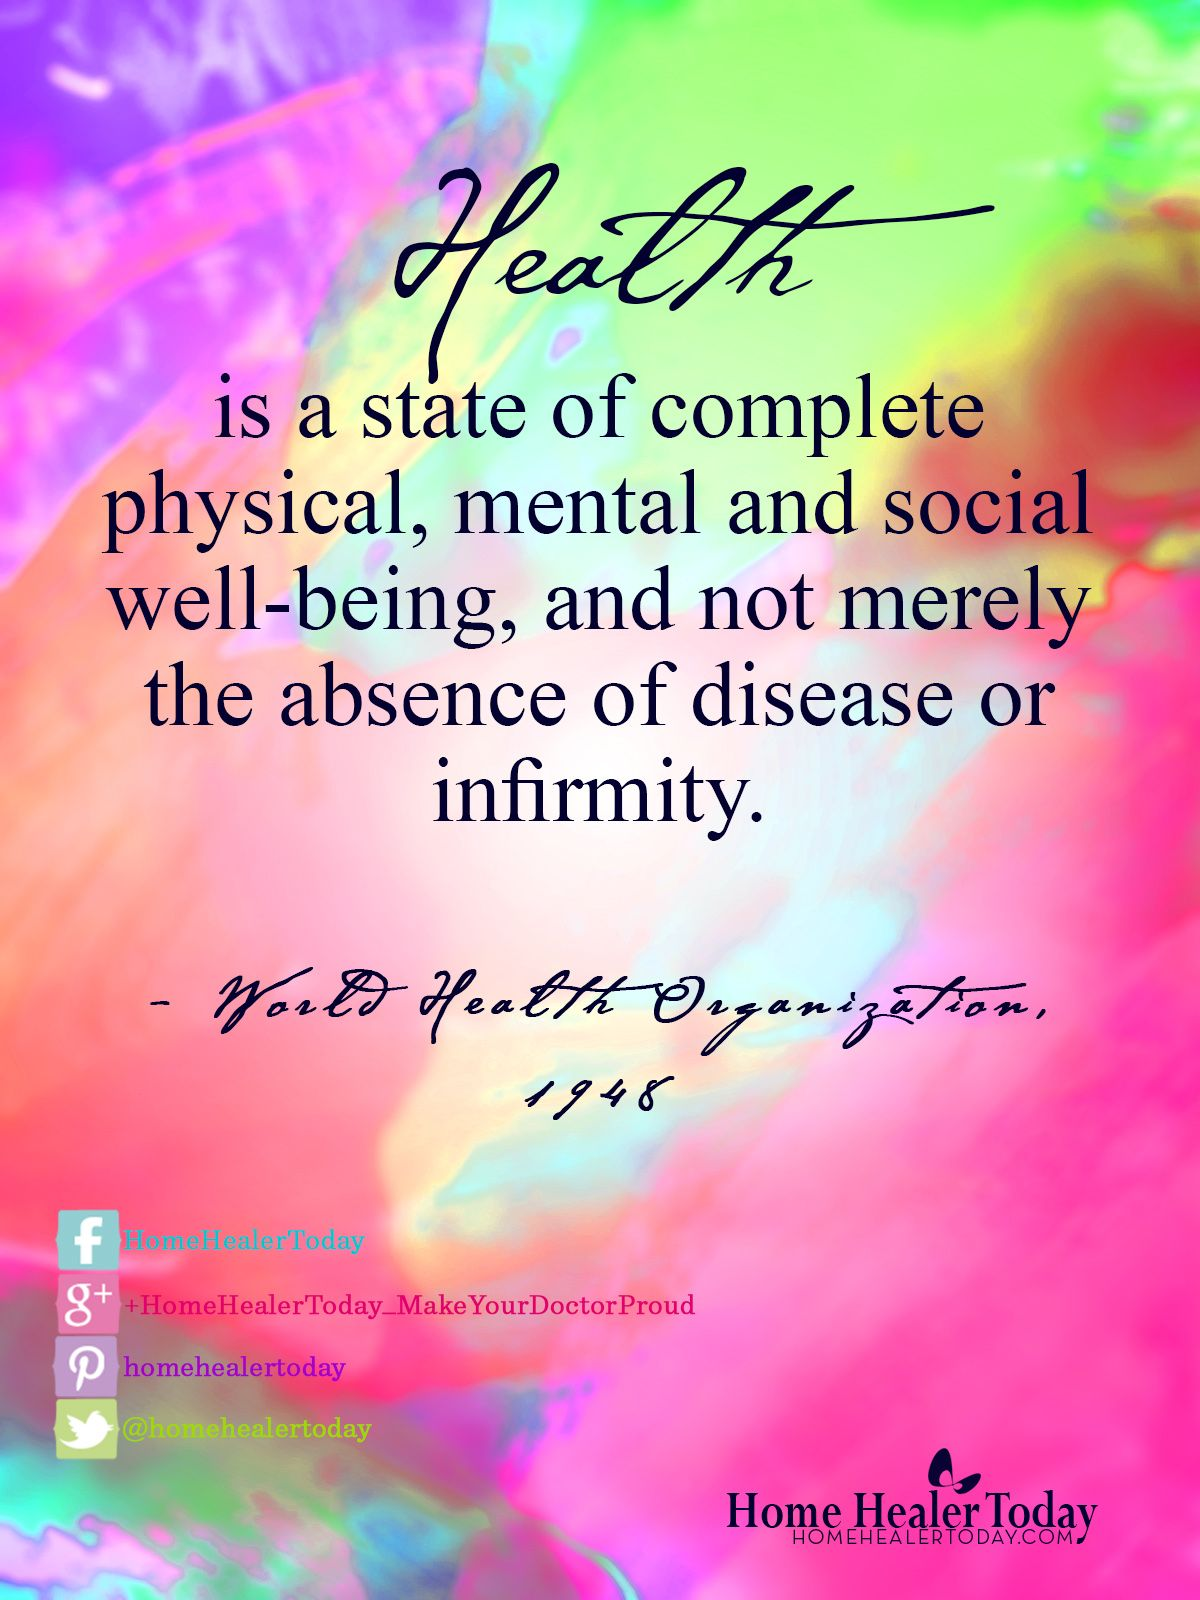 Health - is a state of complete physical, mental and social well-being, and not merely the absence of disease or infirmity.